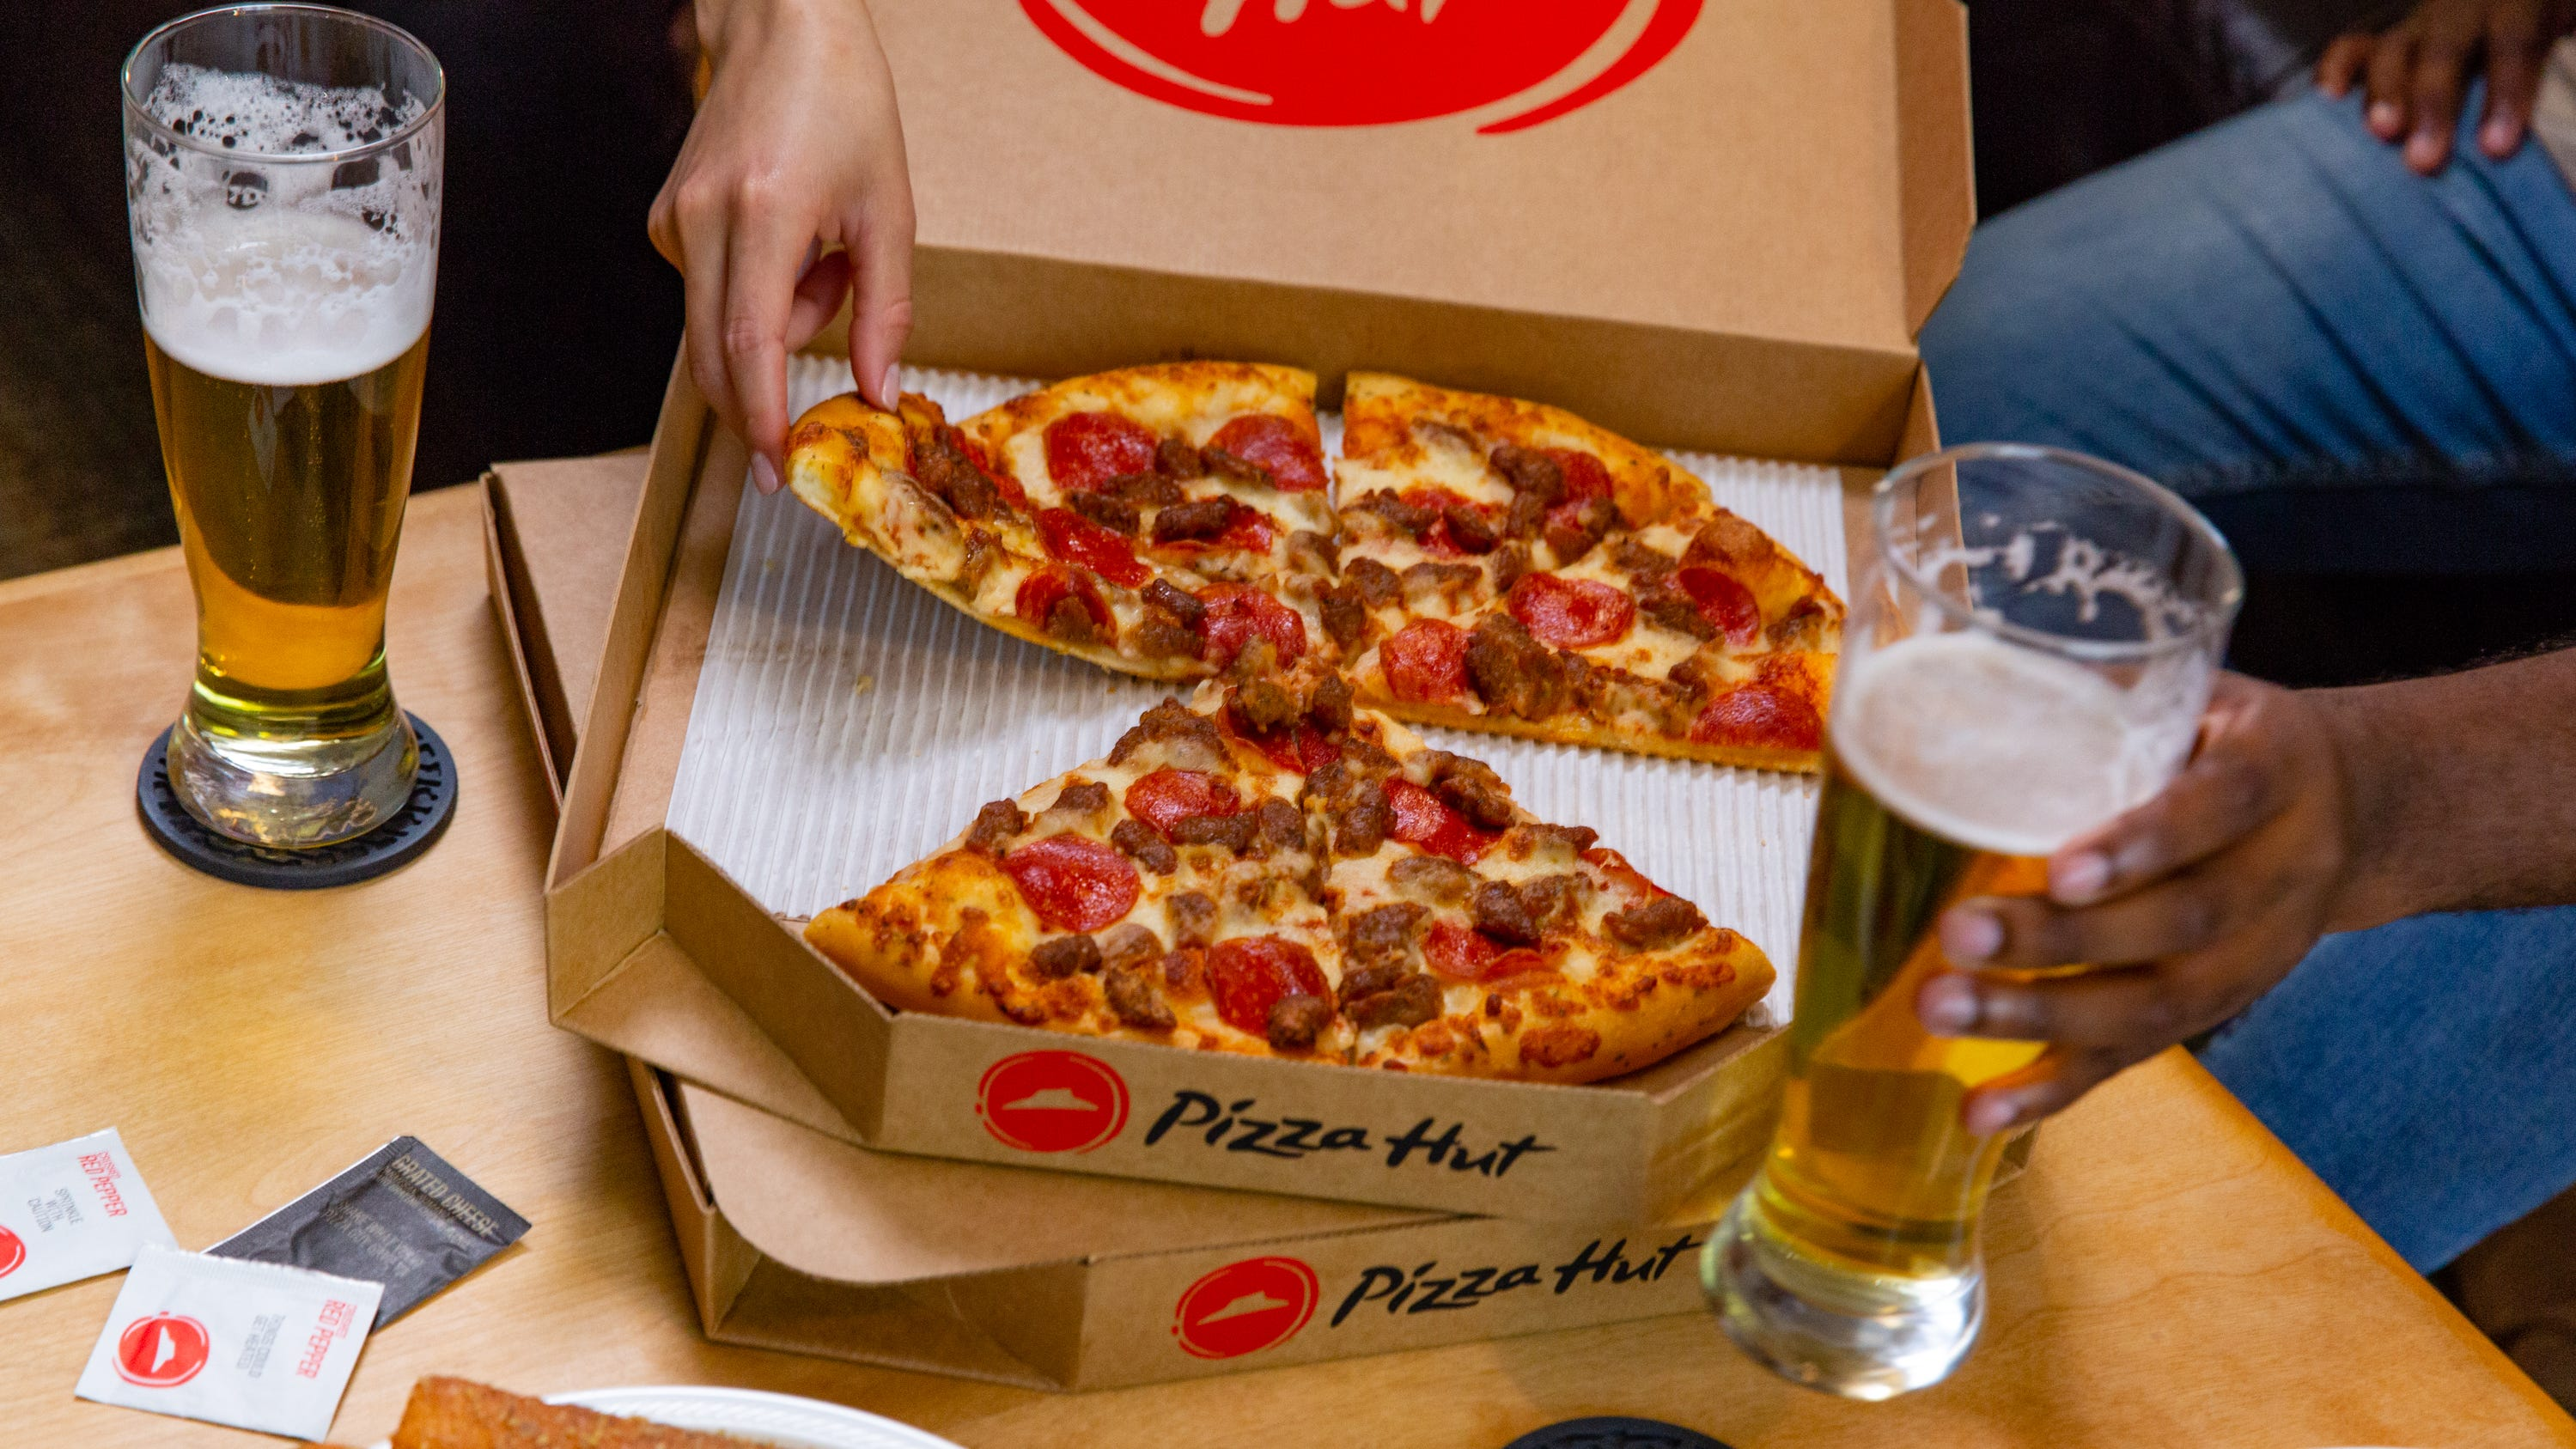 Pizza Hut Beer Delivery Expands To 5 More States 300 Restaurants